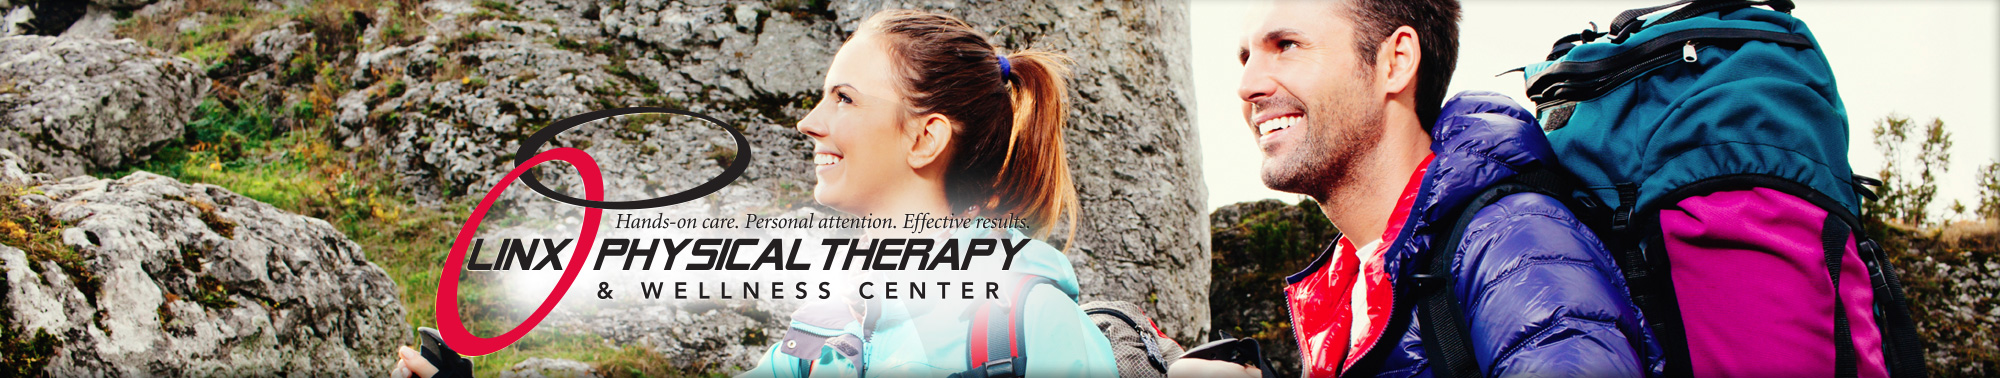 Linx Physical Therapy & Wellness